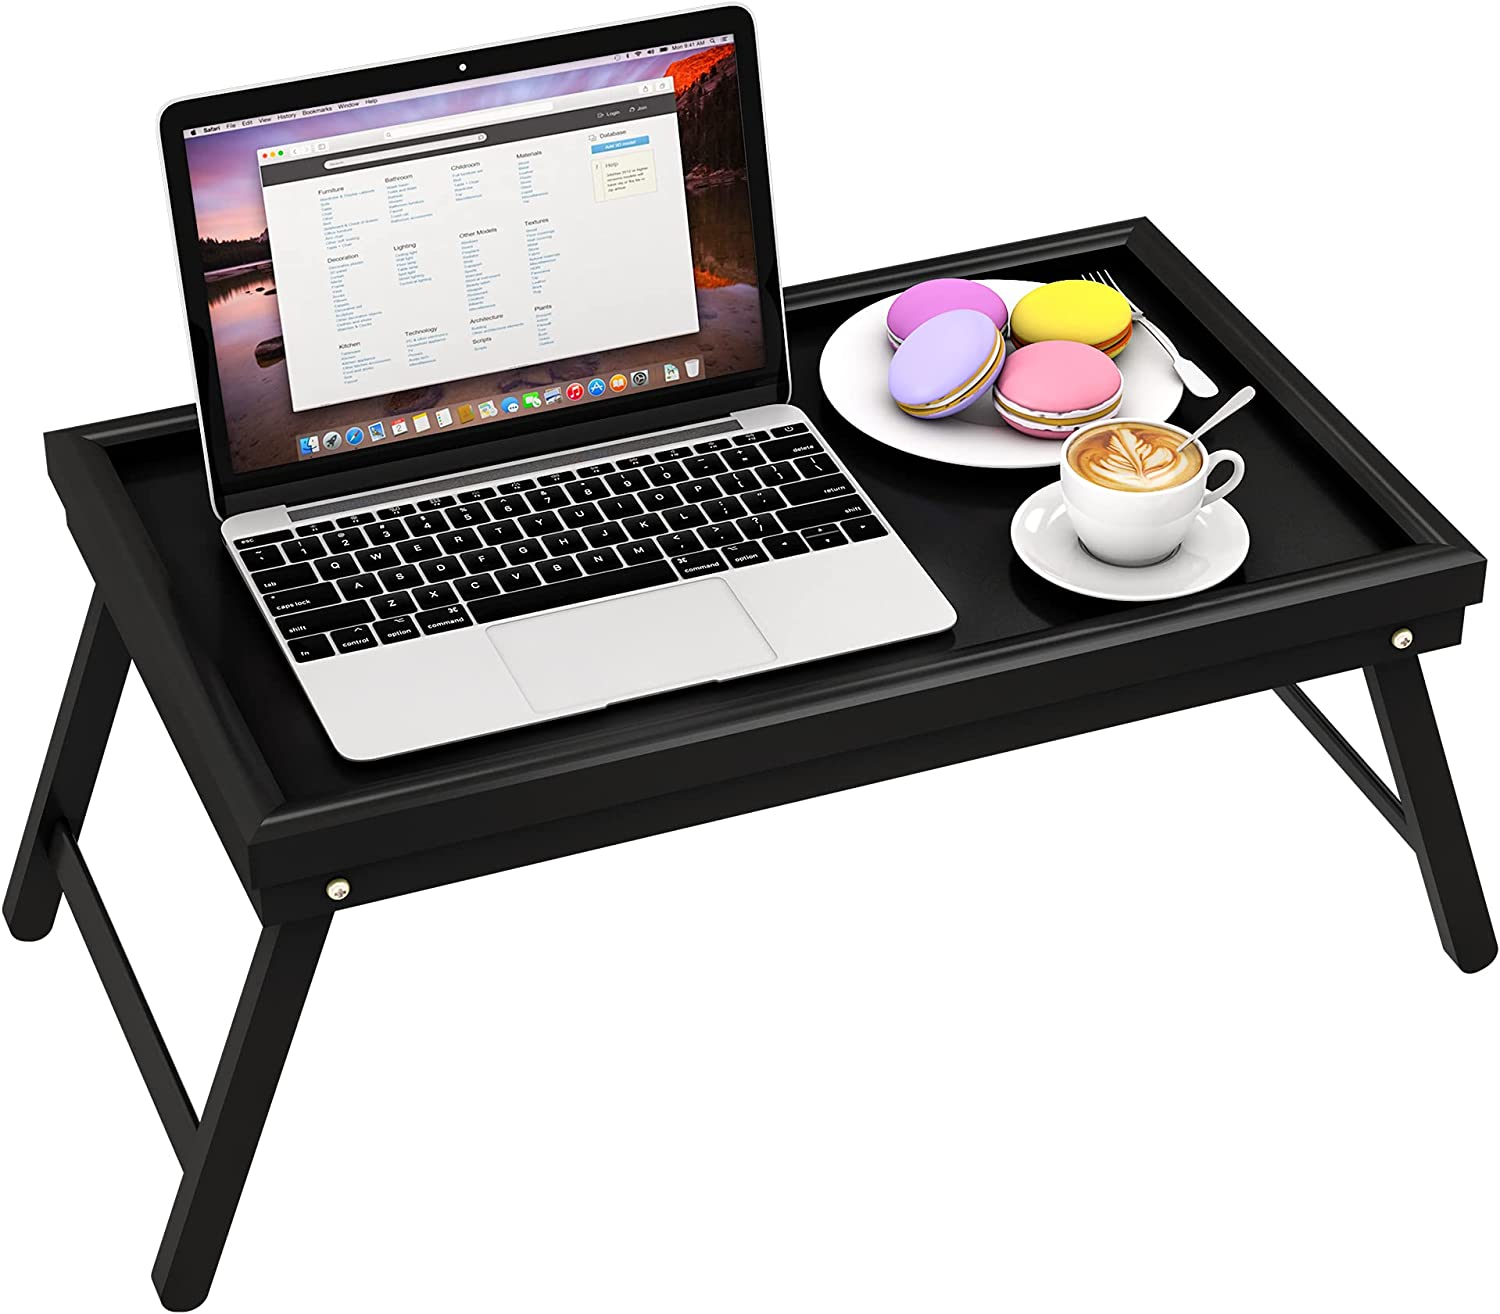 Zhuoyue Bed Breakfast Tray Table Serving Lap Food TV Dinner for Eating with Folding Legs Black Bamboo